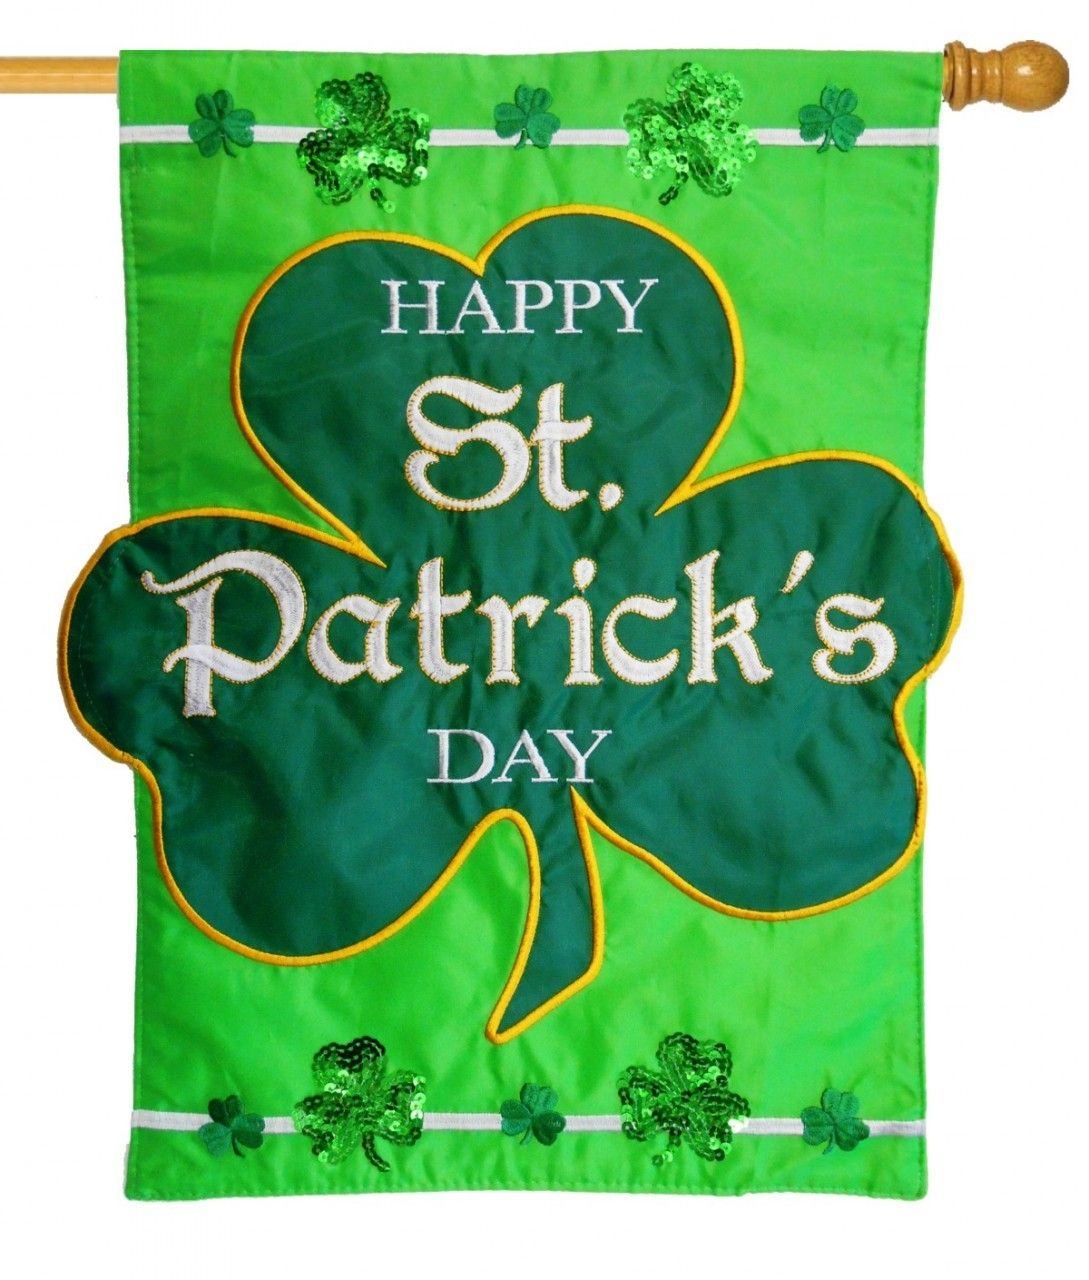 Pin by I AmErica\'s Flag\'s on St. Patrick\'s Day House Flag and Garden ...